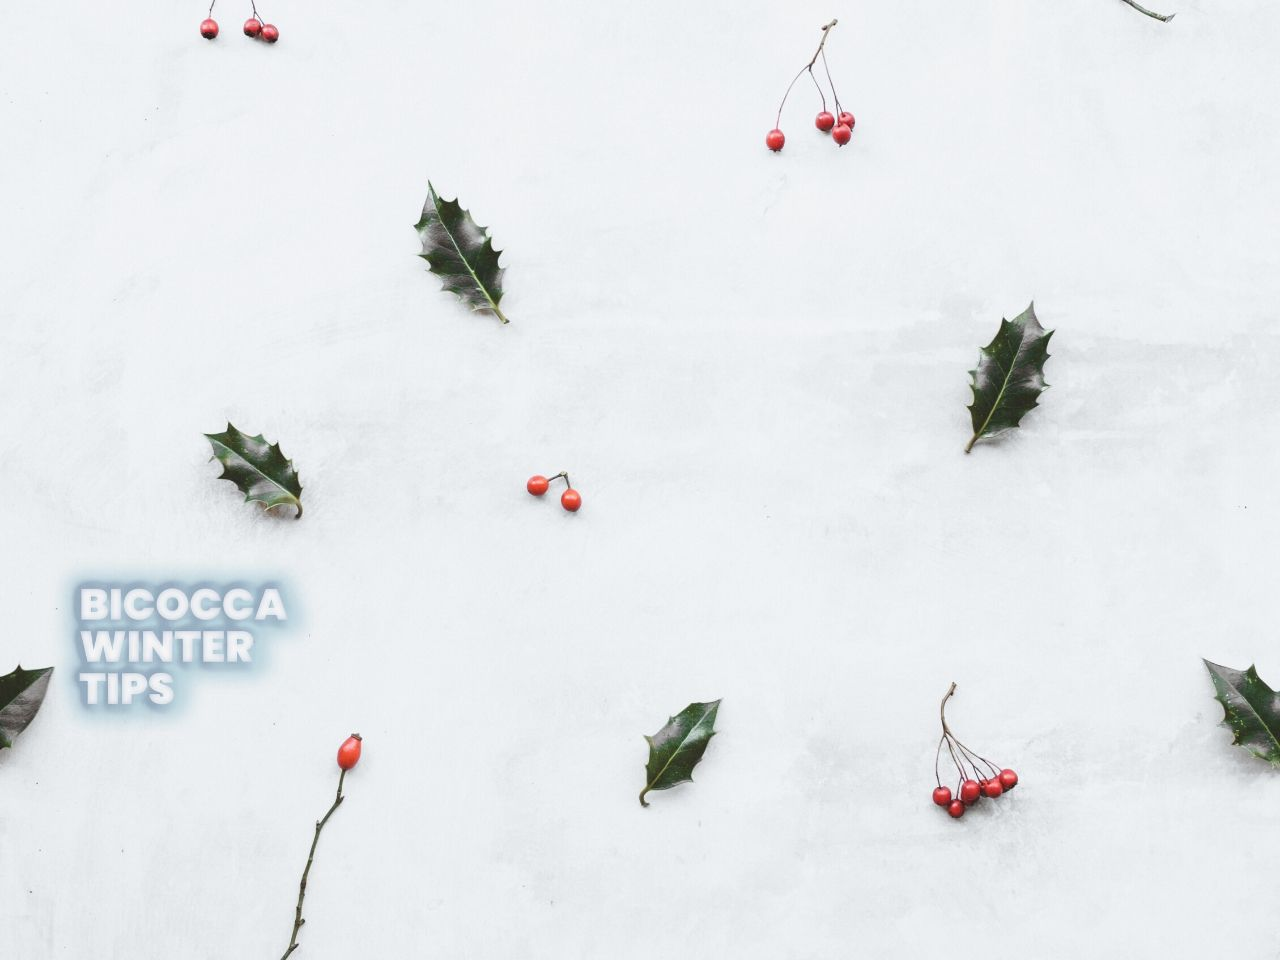 Bicocca Winter Tips